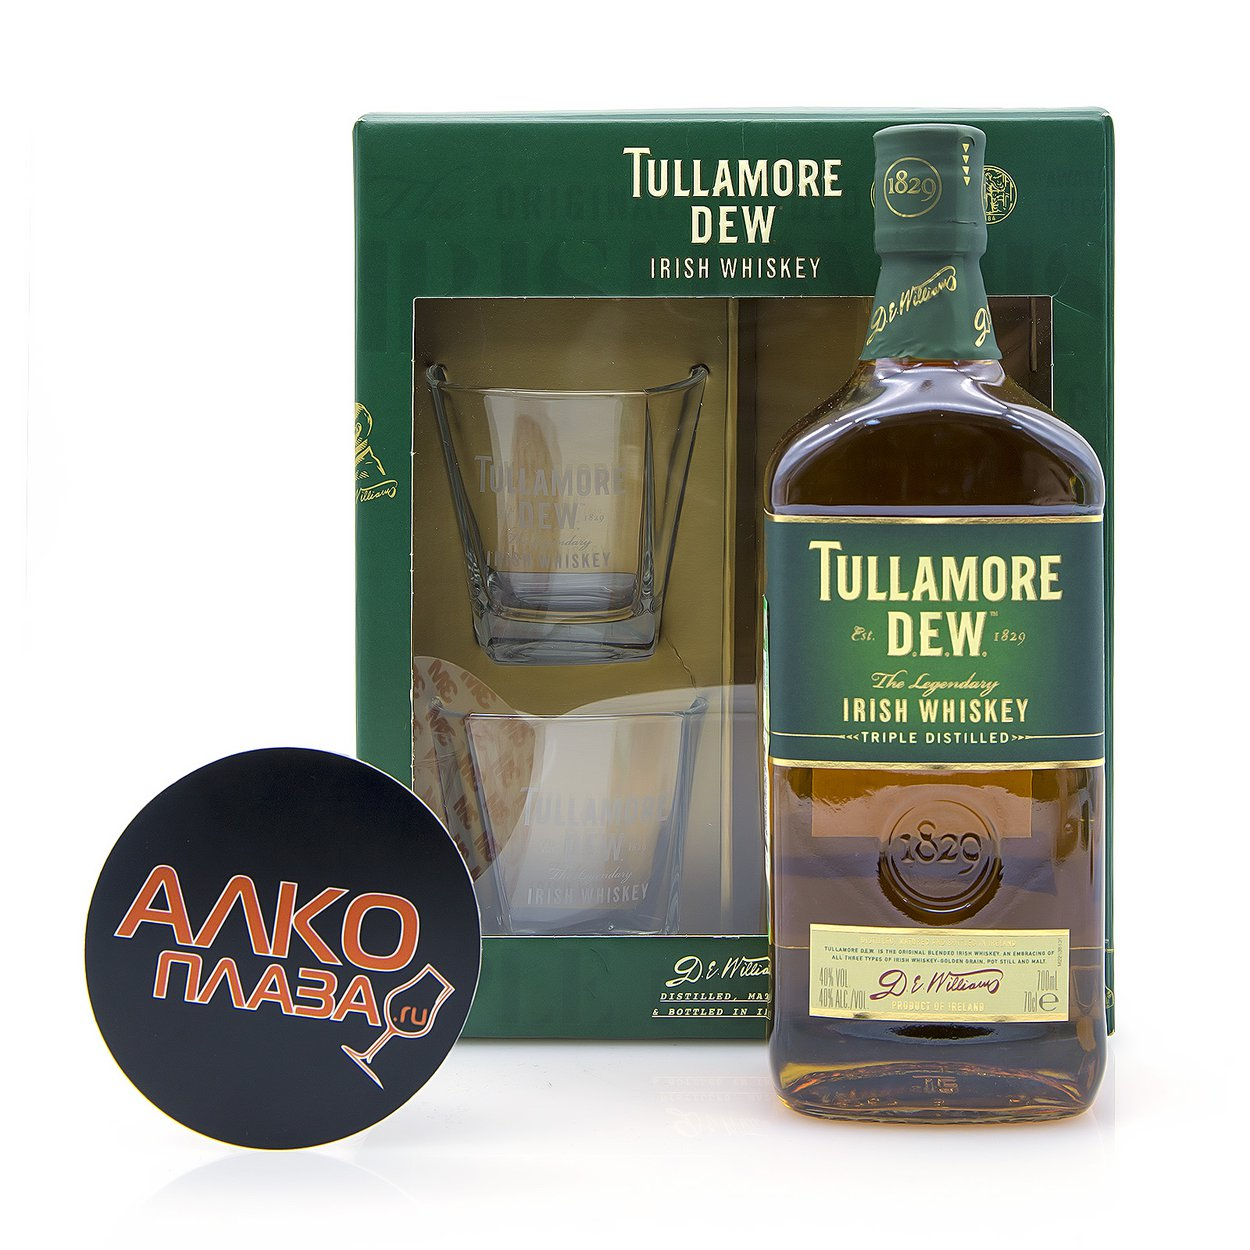 Tullamore Dew with 2 glasses - виски Талламор Дью с двумя стаканами 0.7 л